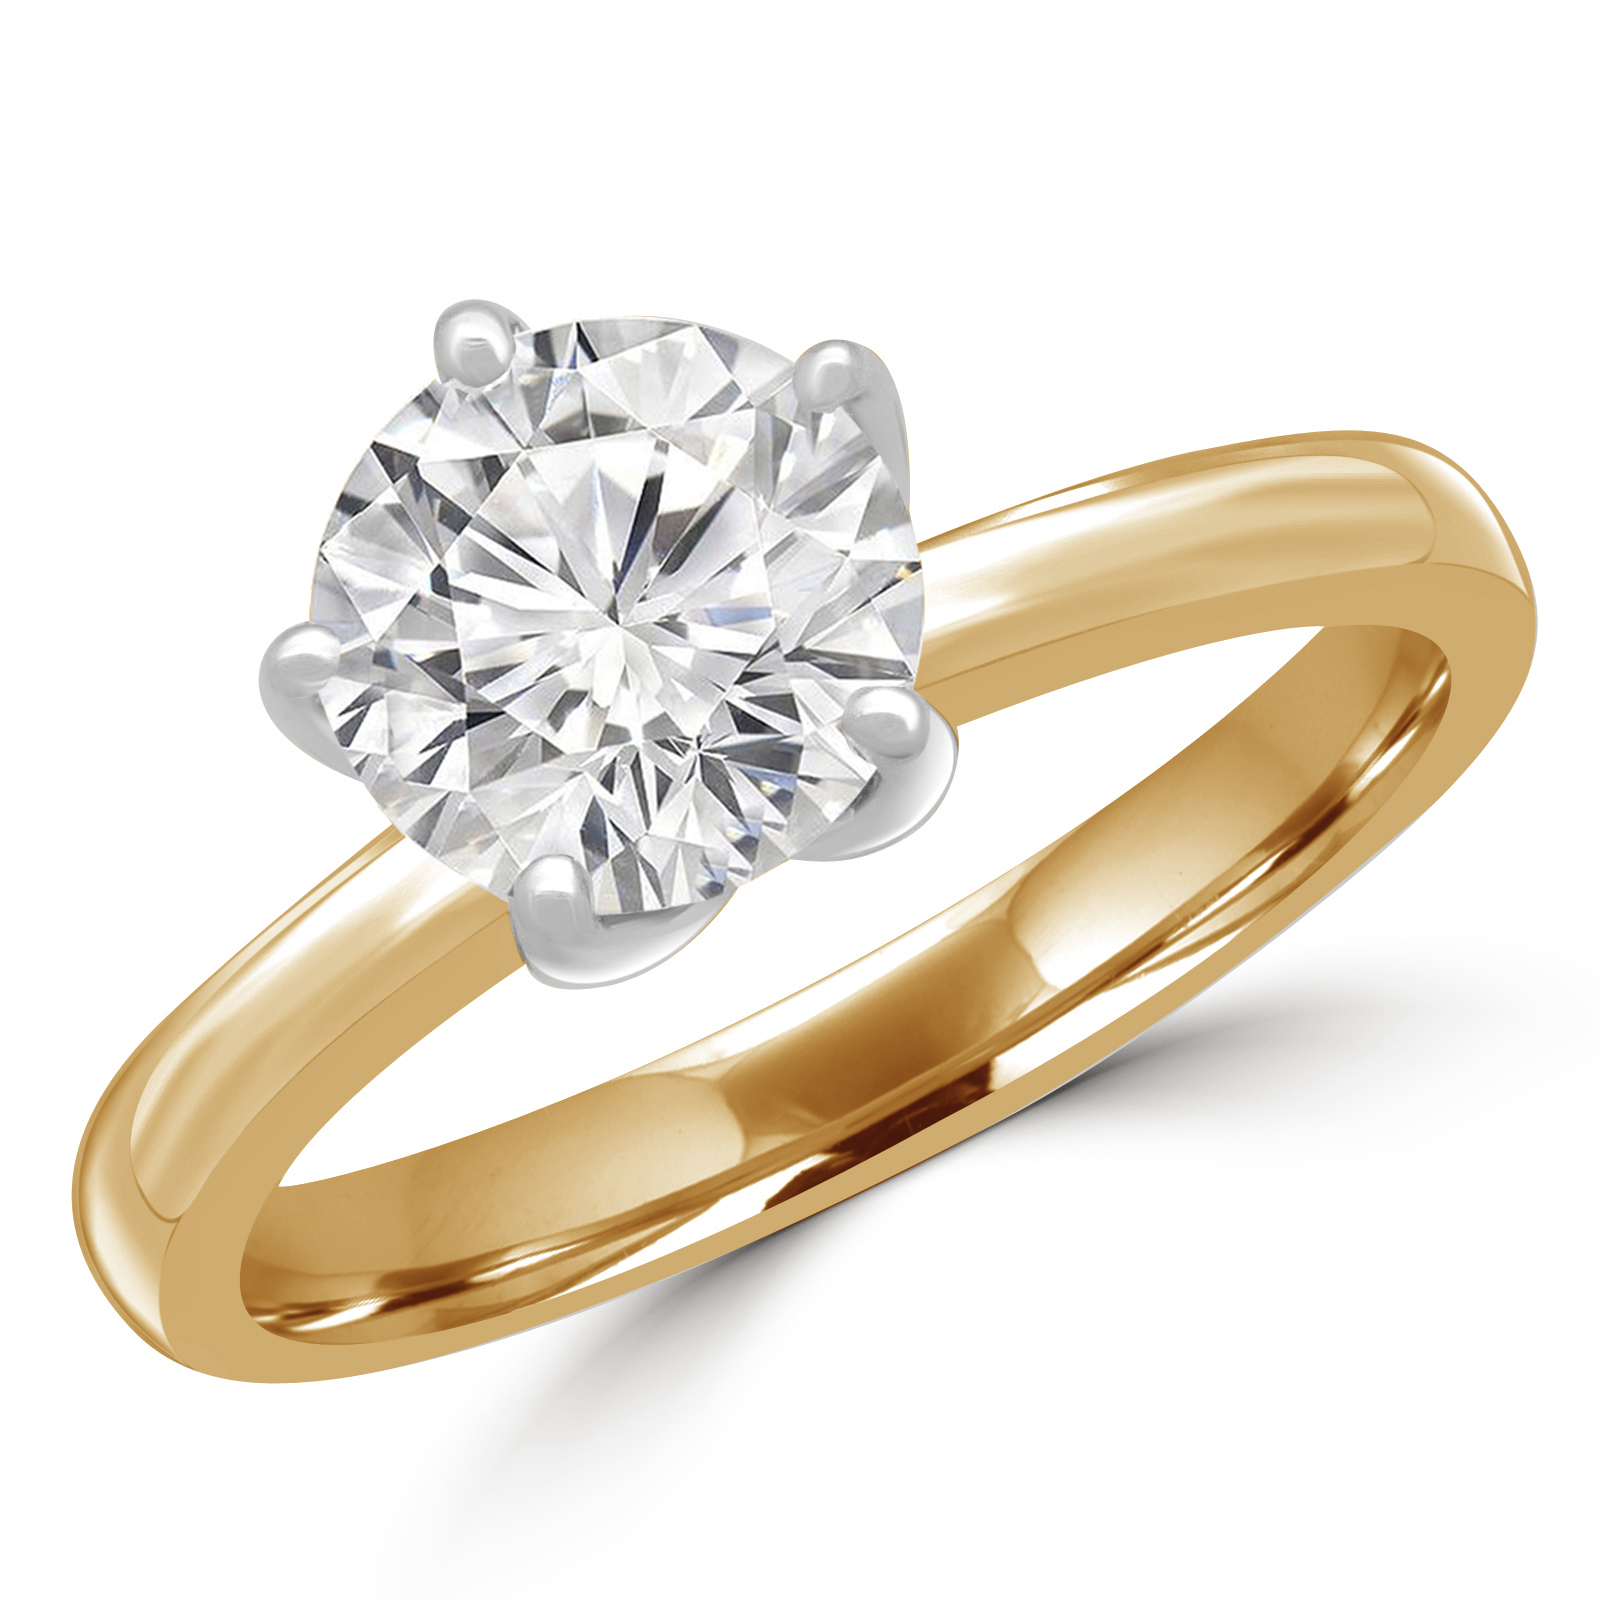 1 1/5 CT Round Diamond Solitaire Engagement Ring in 14K Two-Tone Gold (MD180439) - image 2 de 2